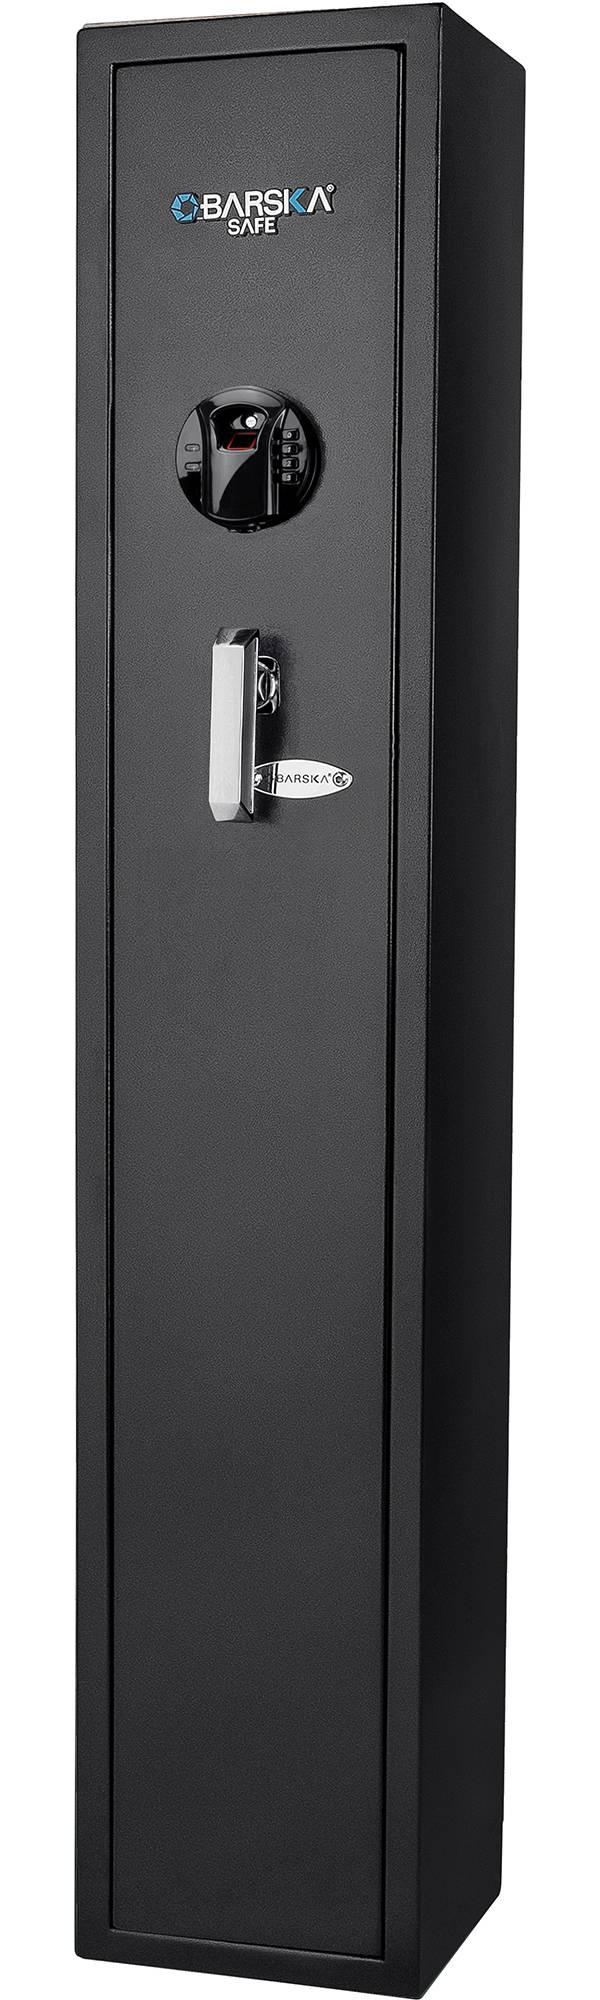 Barska HQ800 Standard Quick Access 4-Gun Rifle Safe with Biometric Keypad Lock product image